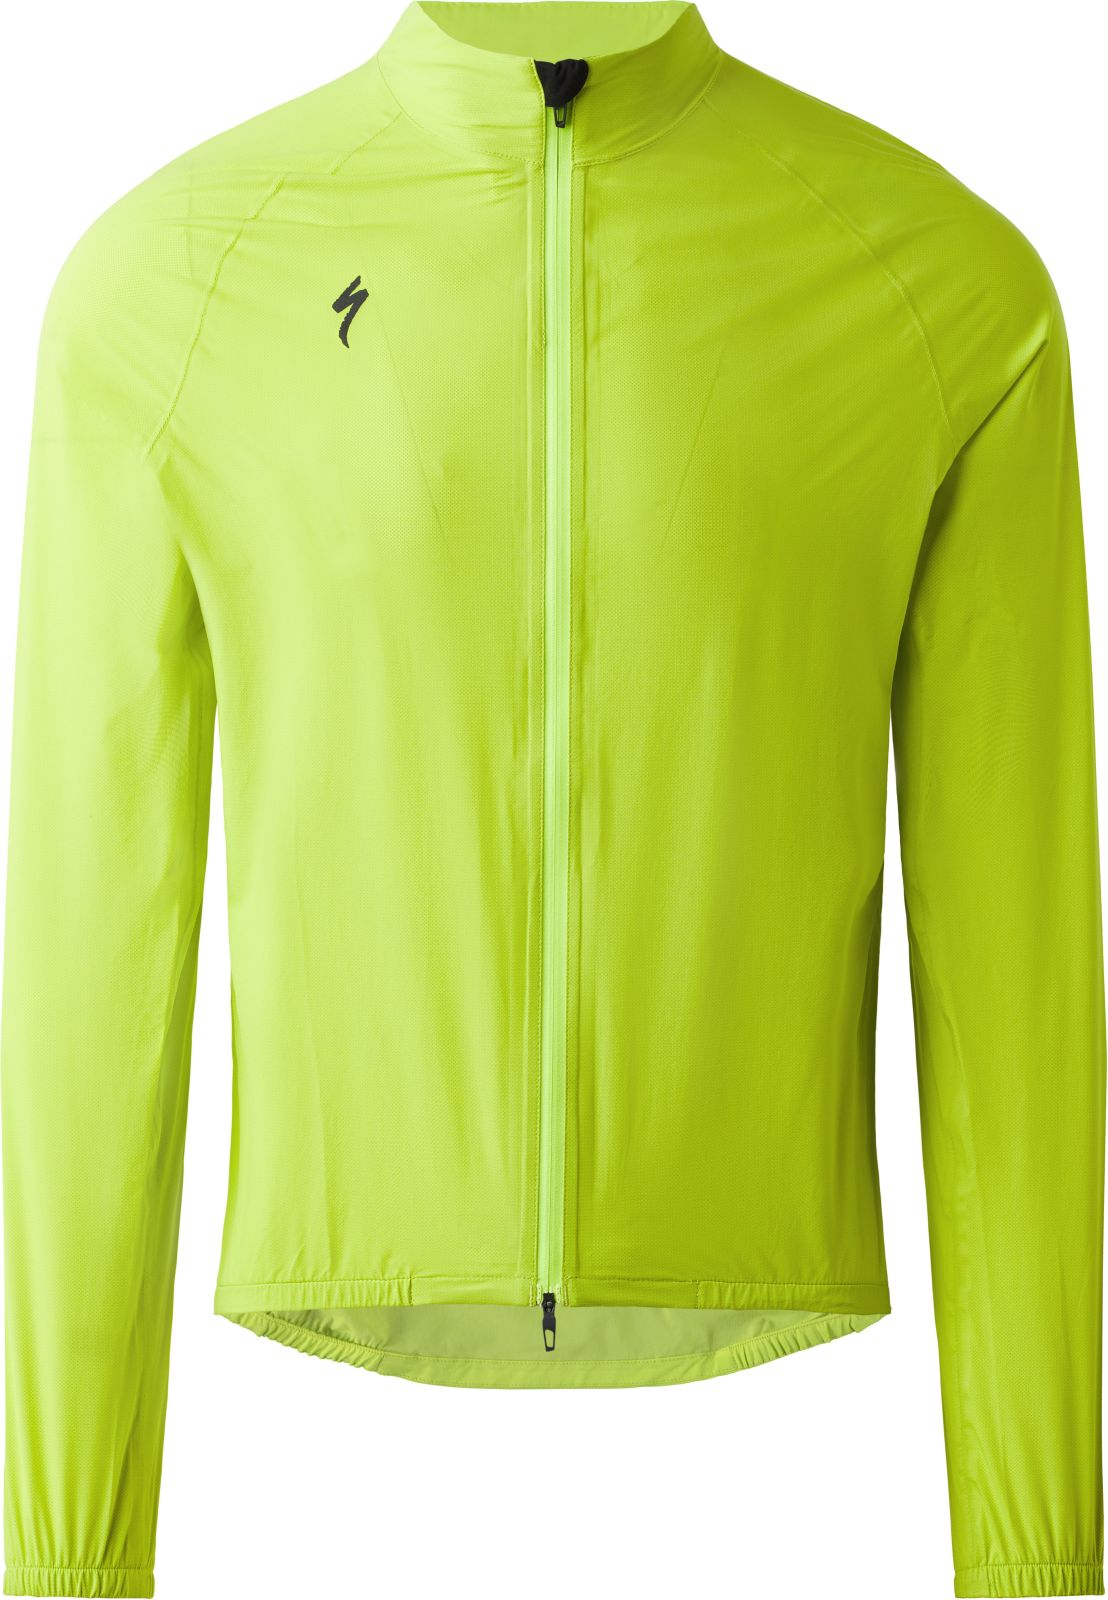 Specialized Deflect H2O Pac Jacket - hyper green L